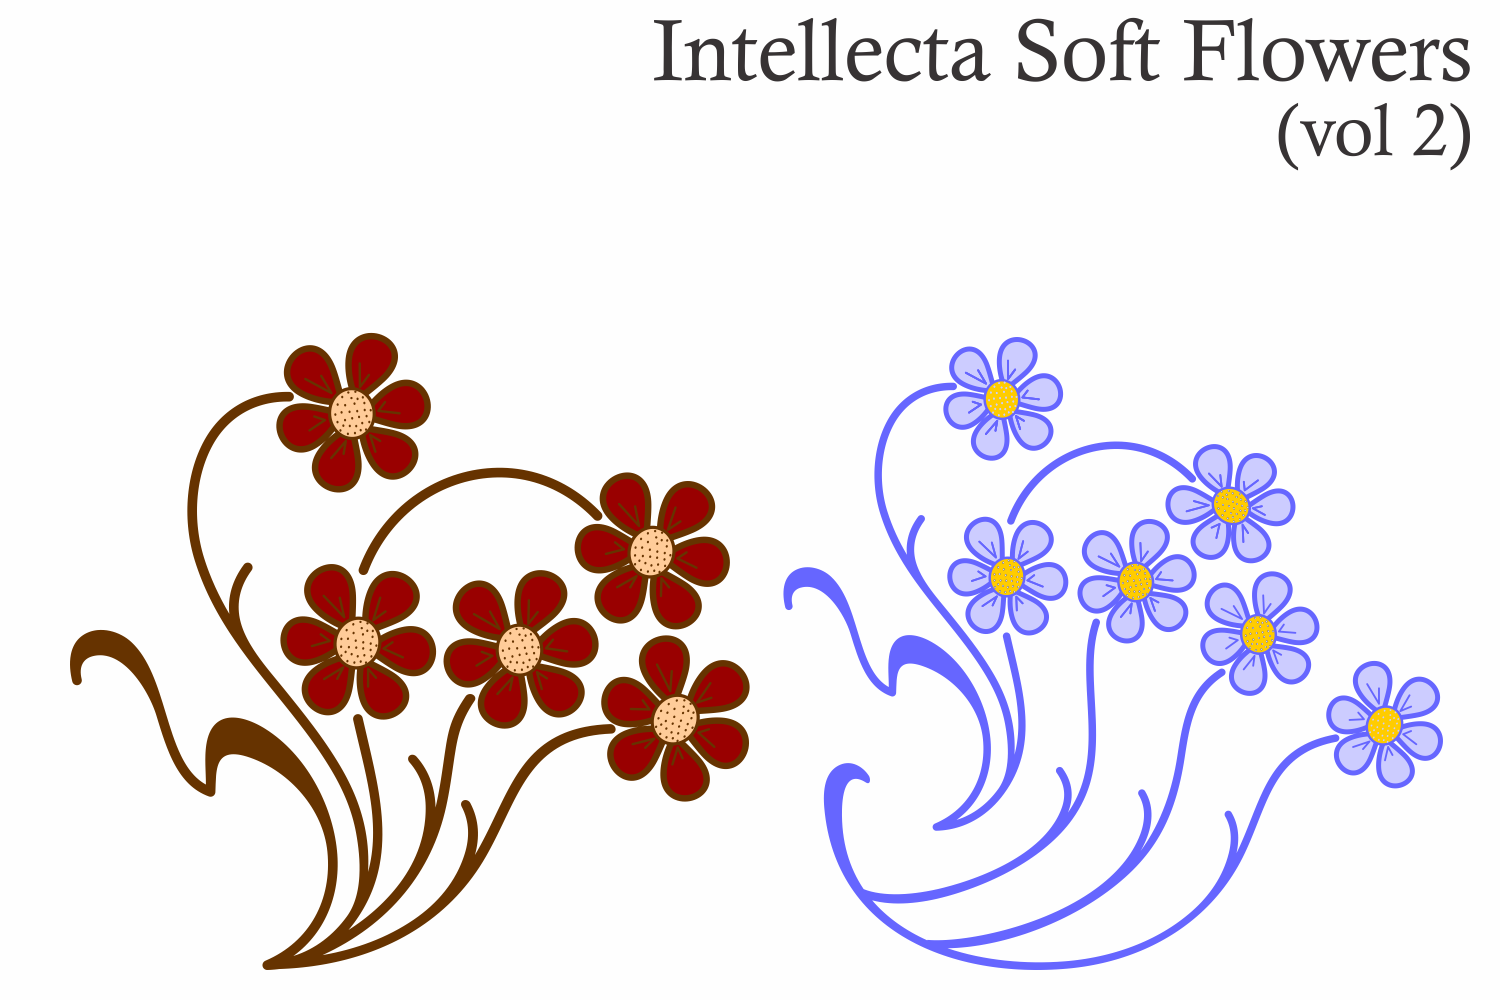 Intellecta Soft Flowers vol 2 example image 5